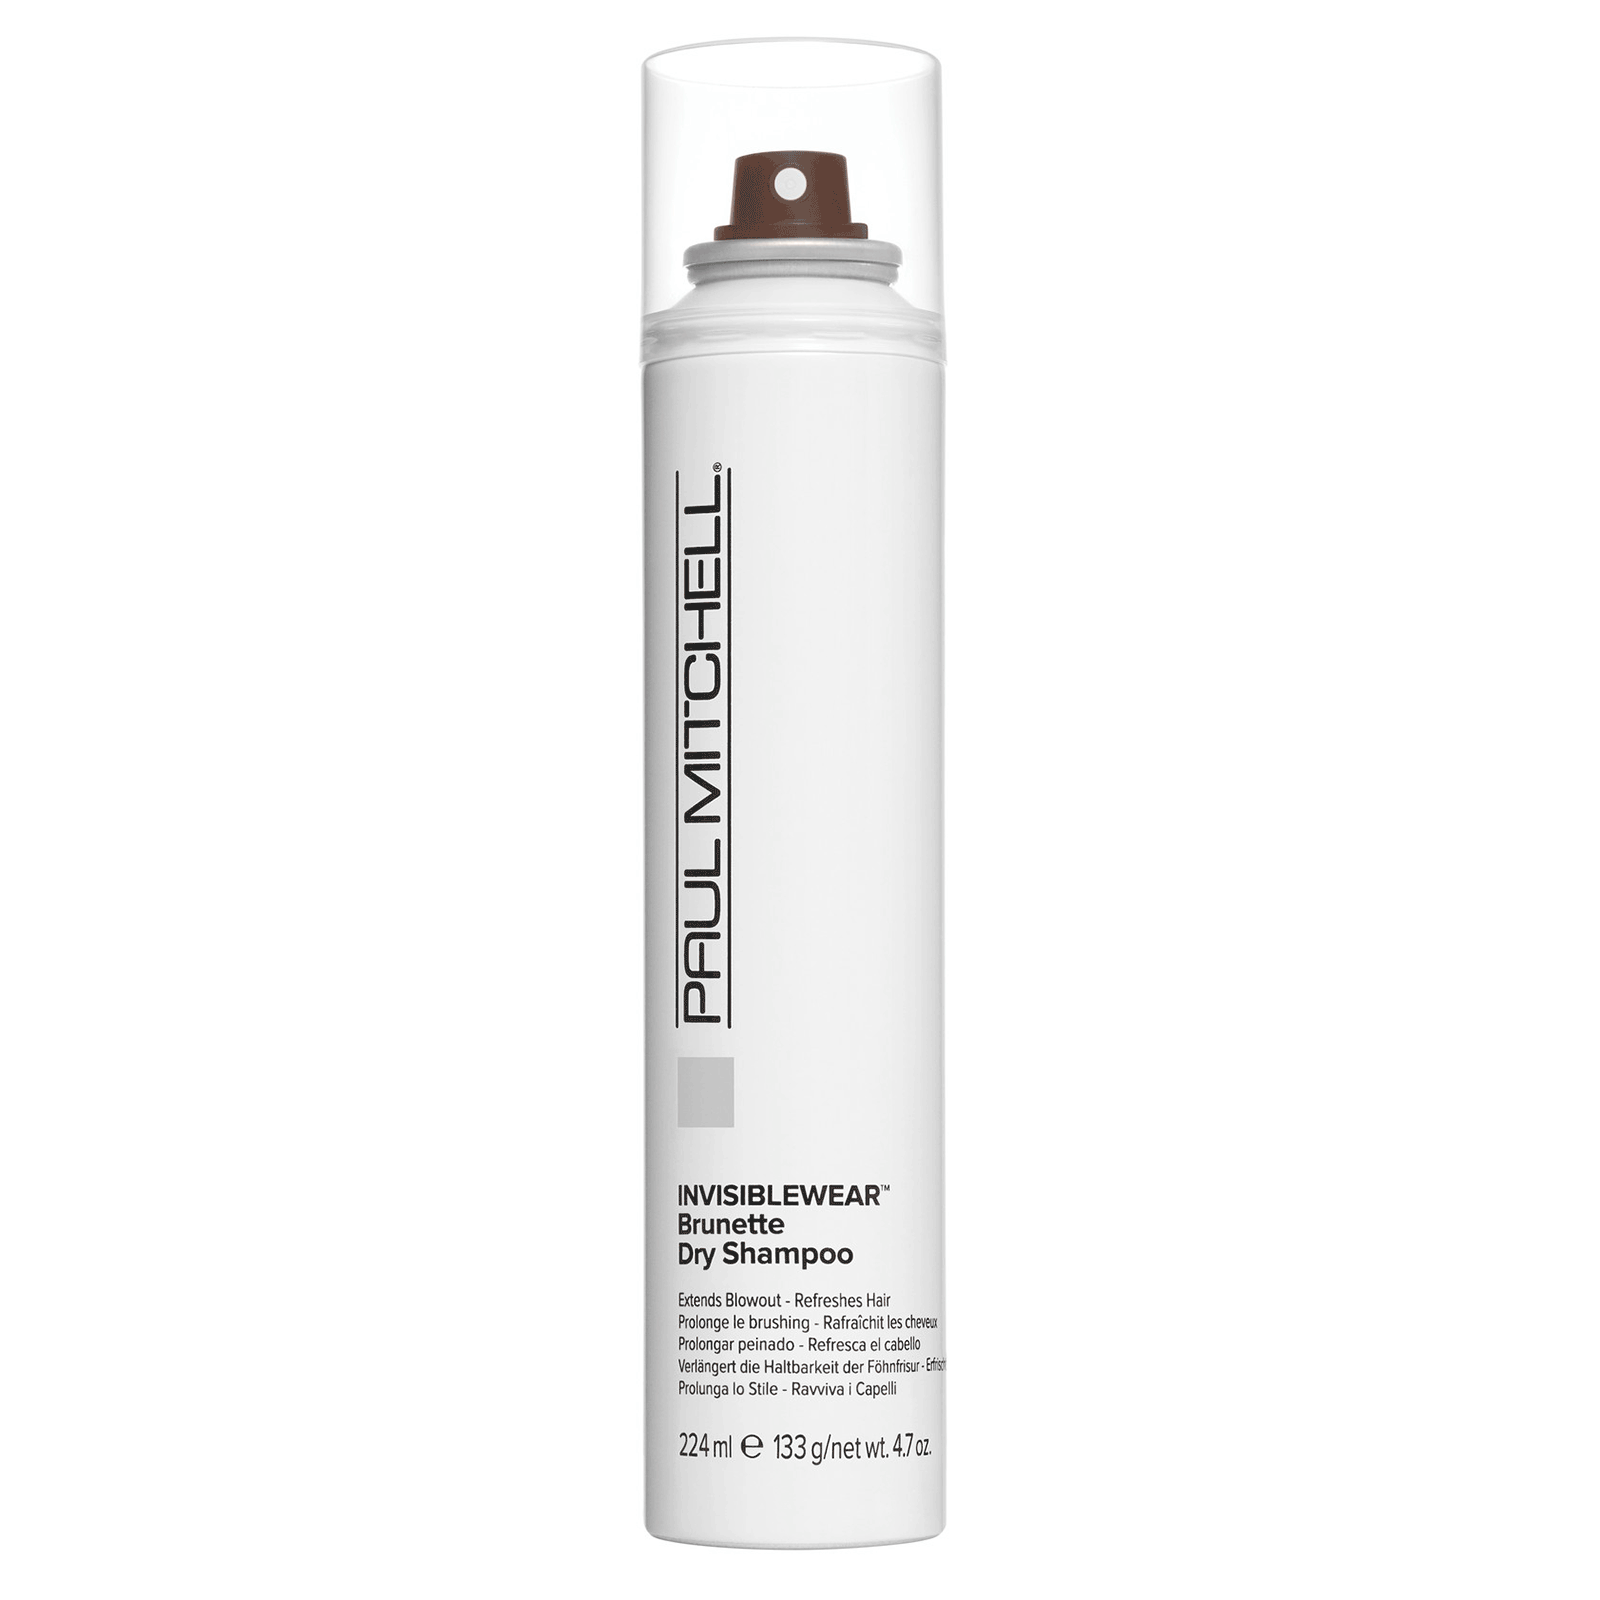 Invisiblewear - Brunette Dry Shampoo